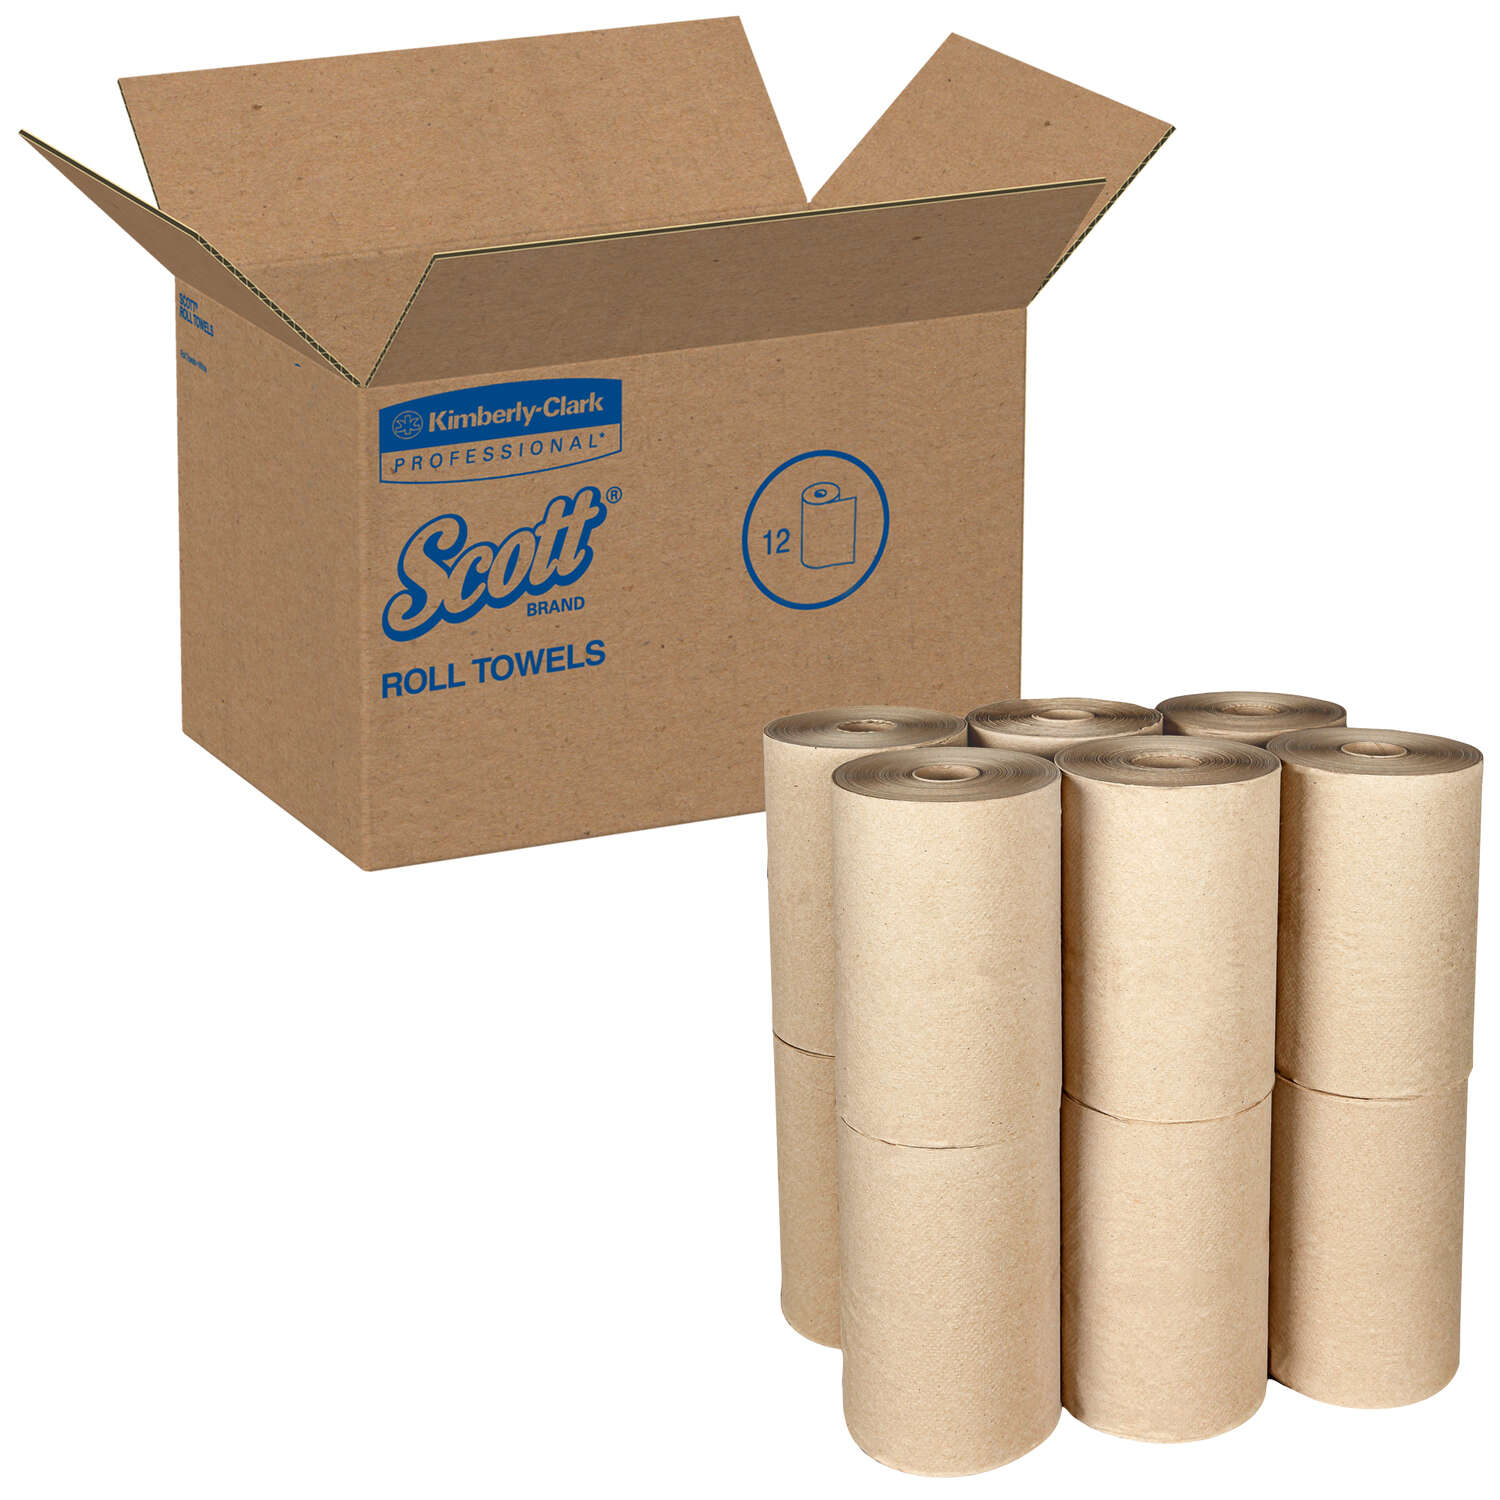 Scott  Hard Roll Towels  250 sheet 1 Ply 12 roll